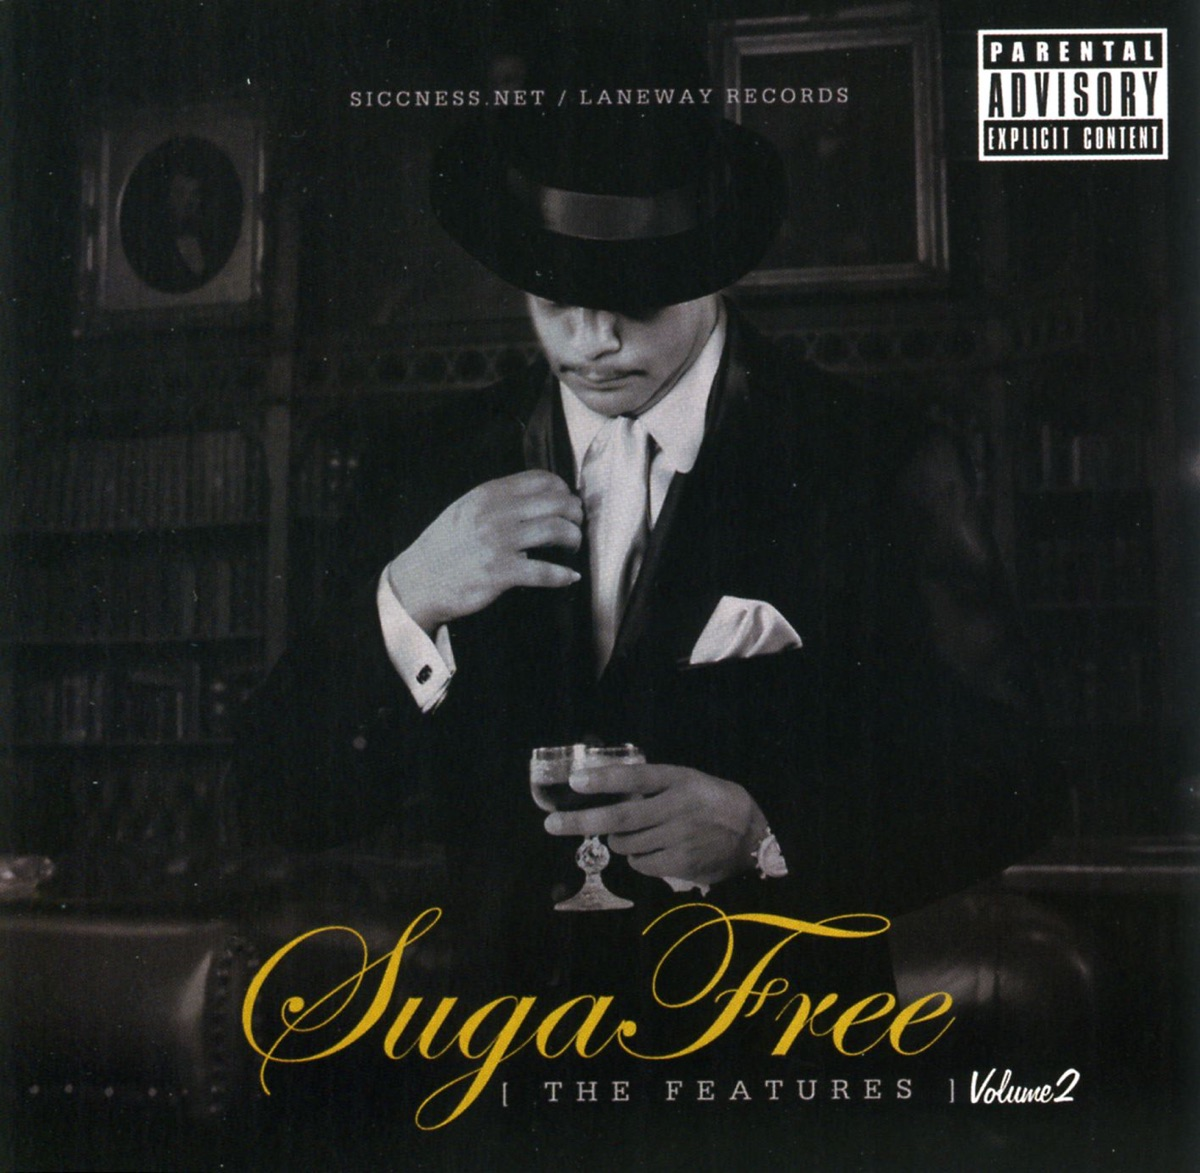 The Features, Vol  2 Album Cover by Suga Free